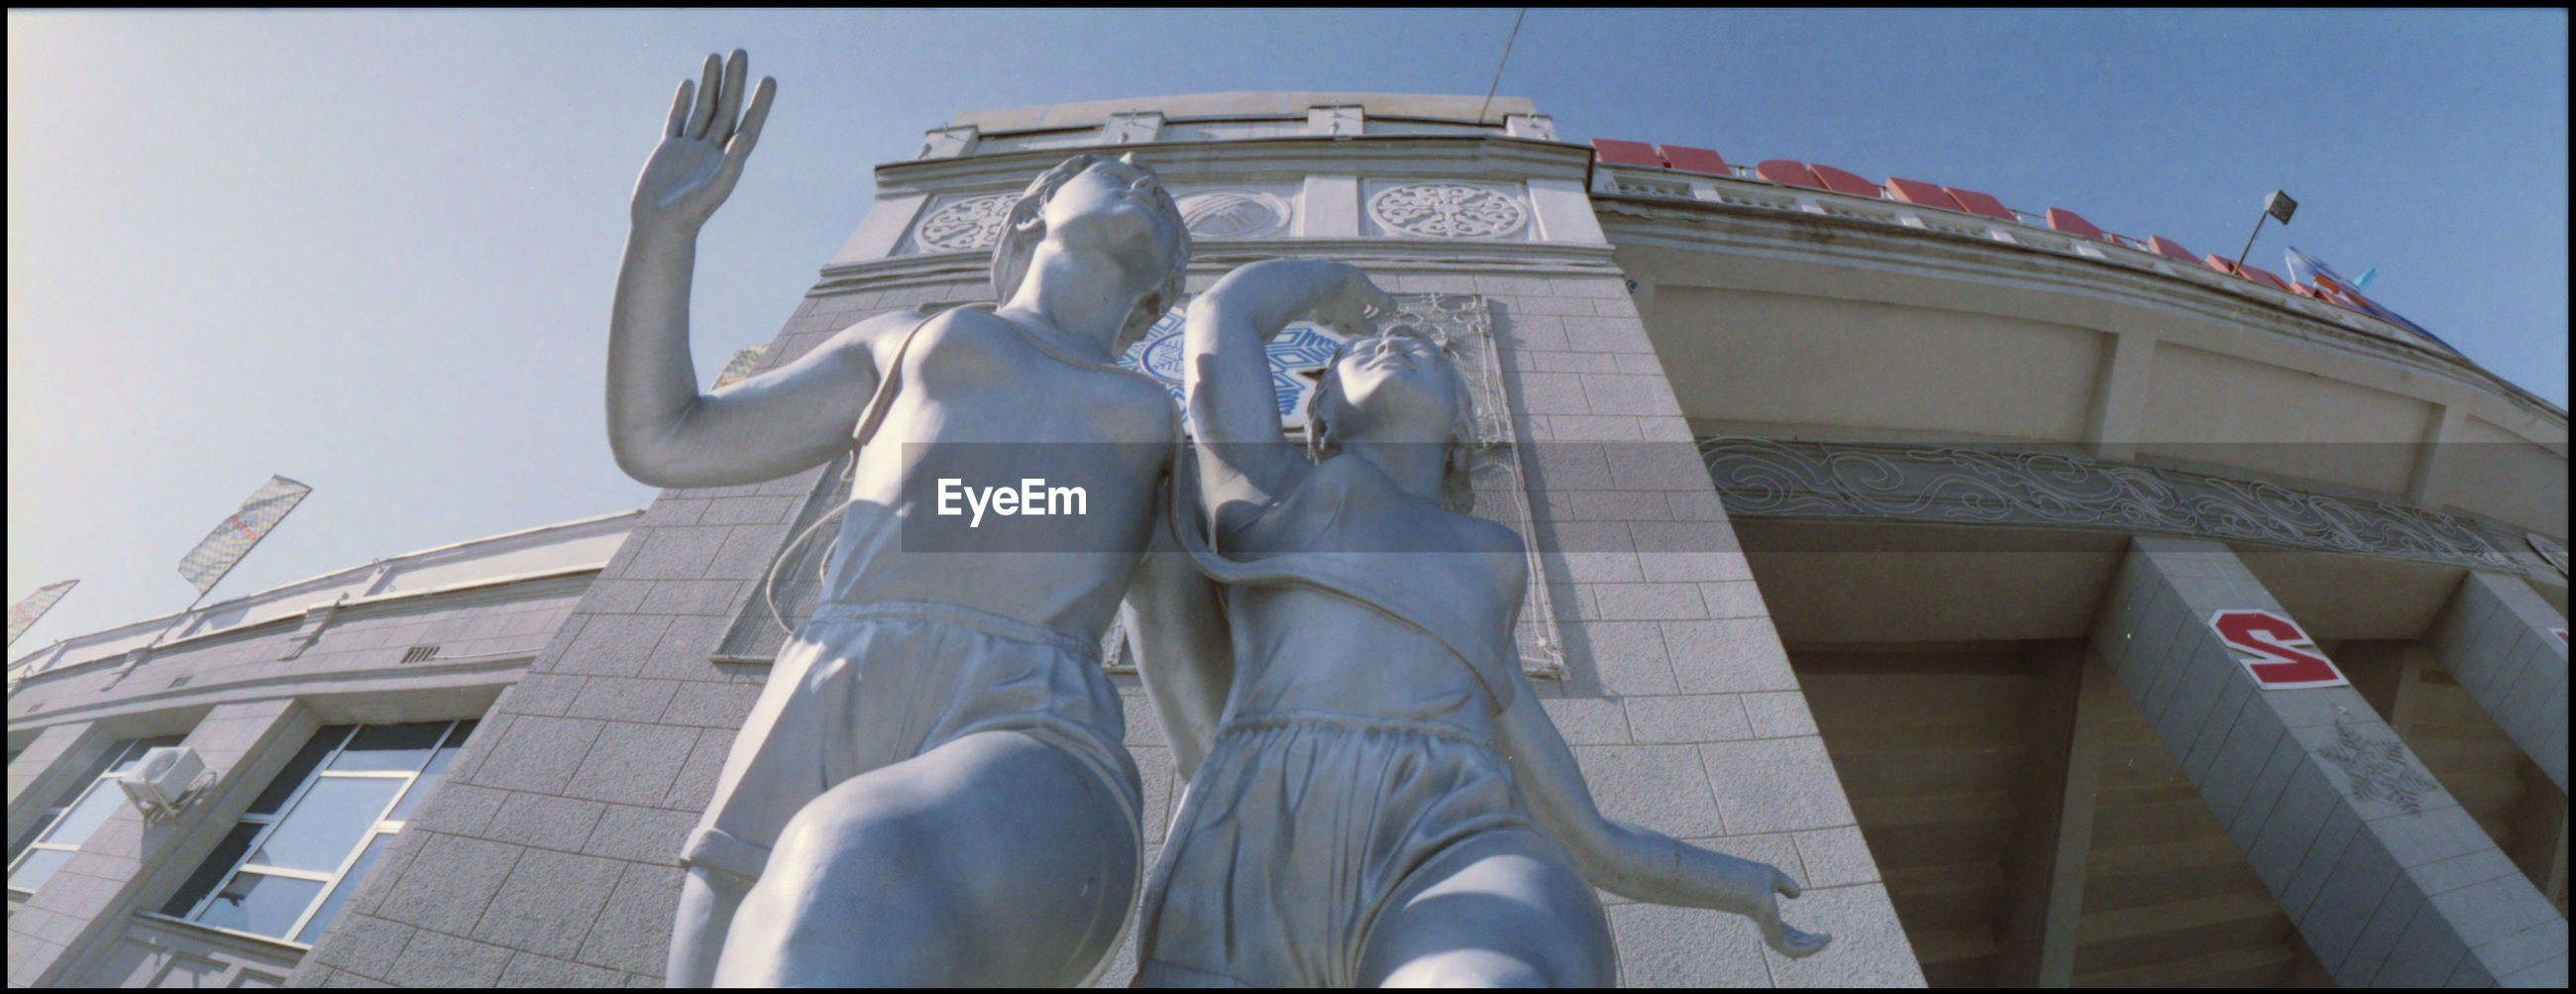 Low angle view of sliver statues outside building